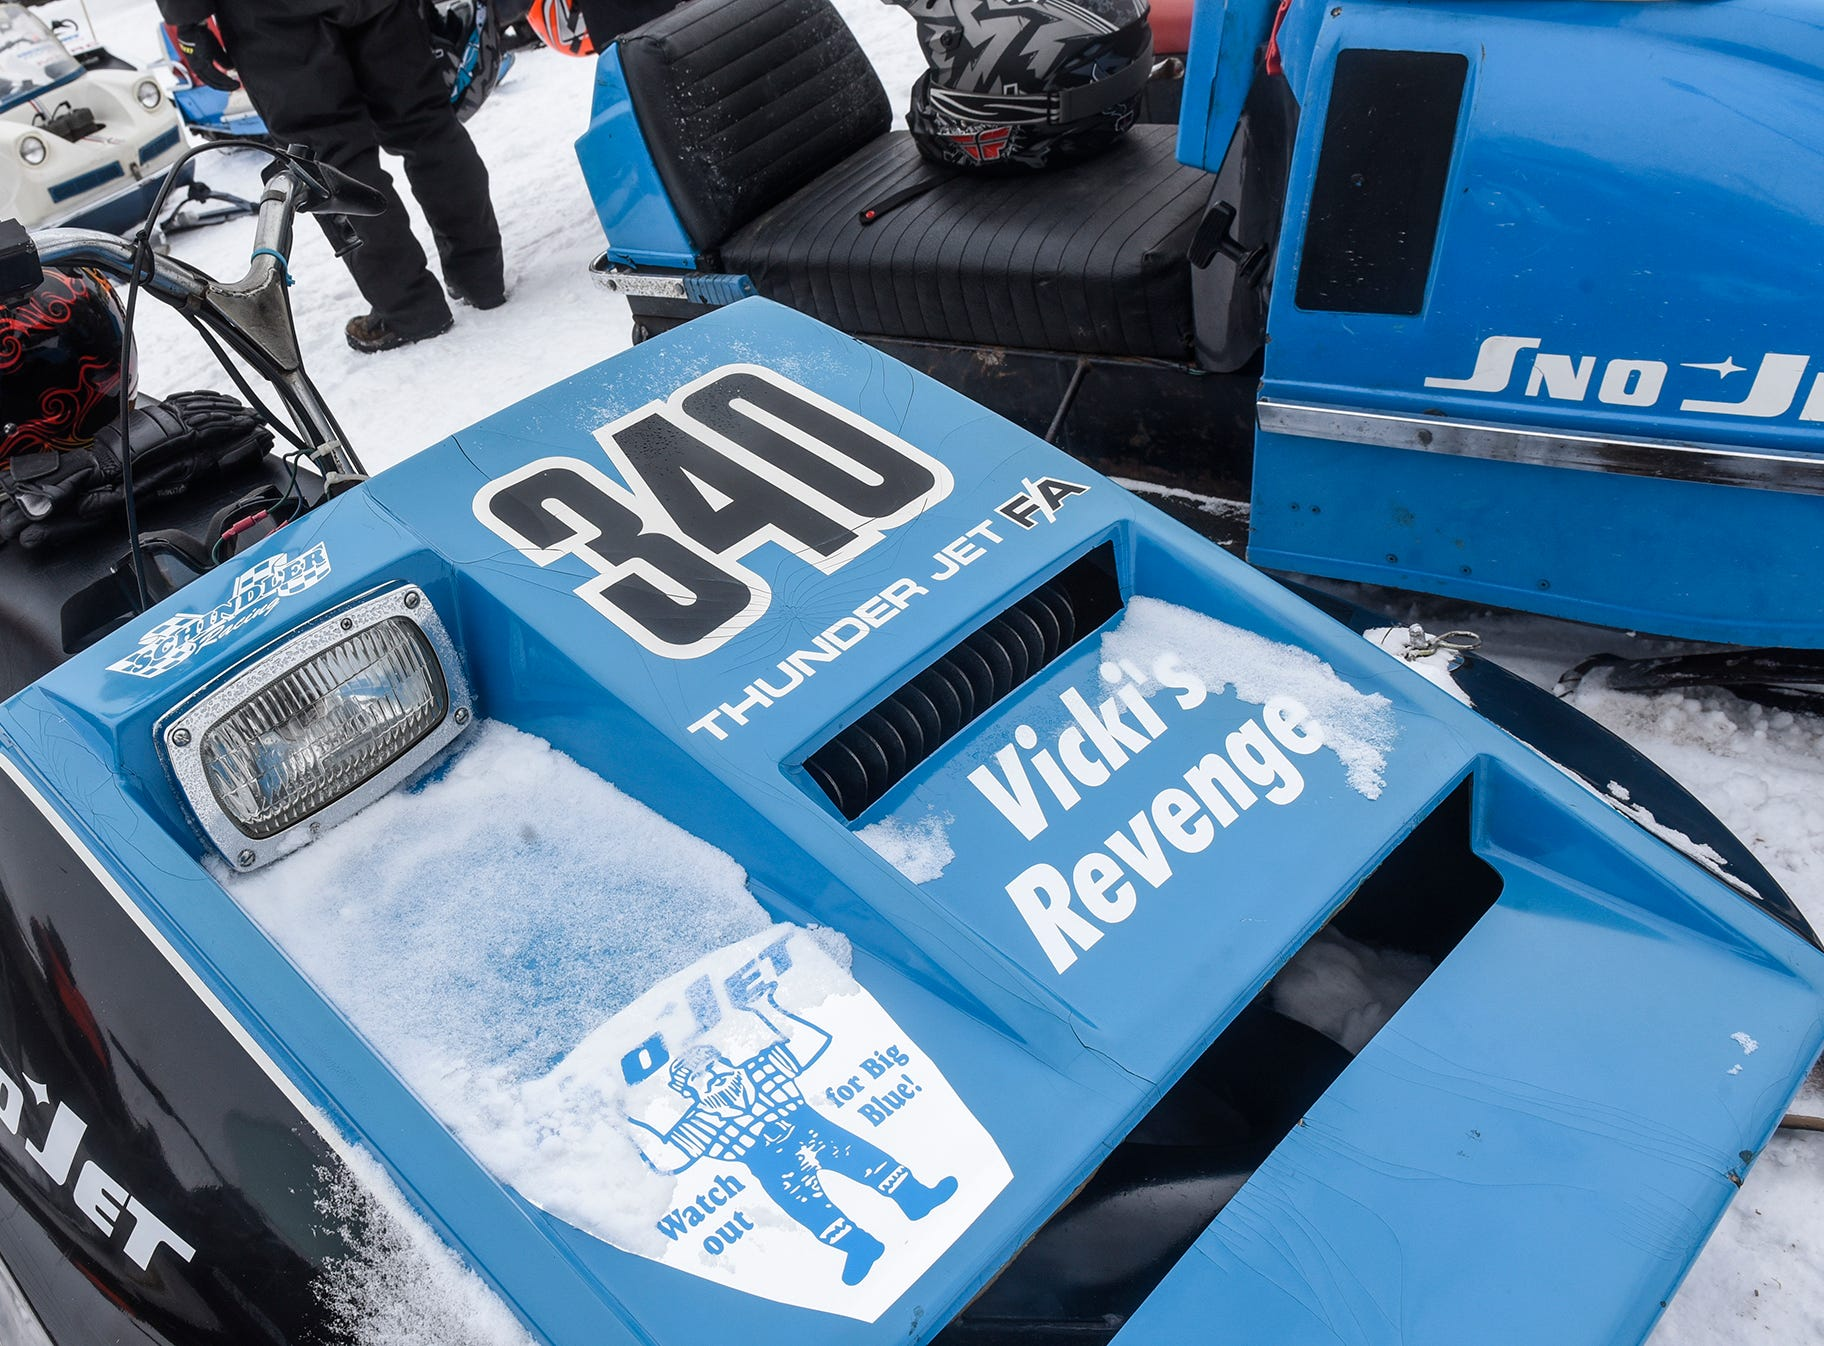 A vintage racing sled is on view Saturday in St. Stephen.